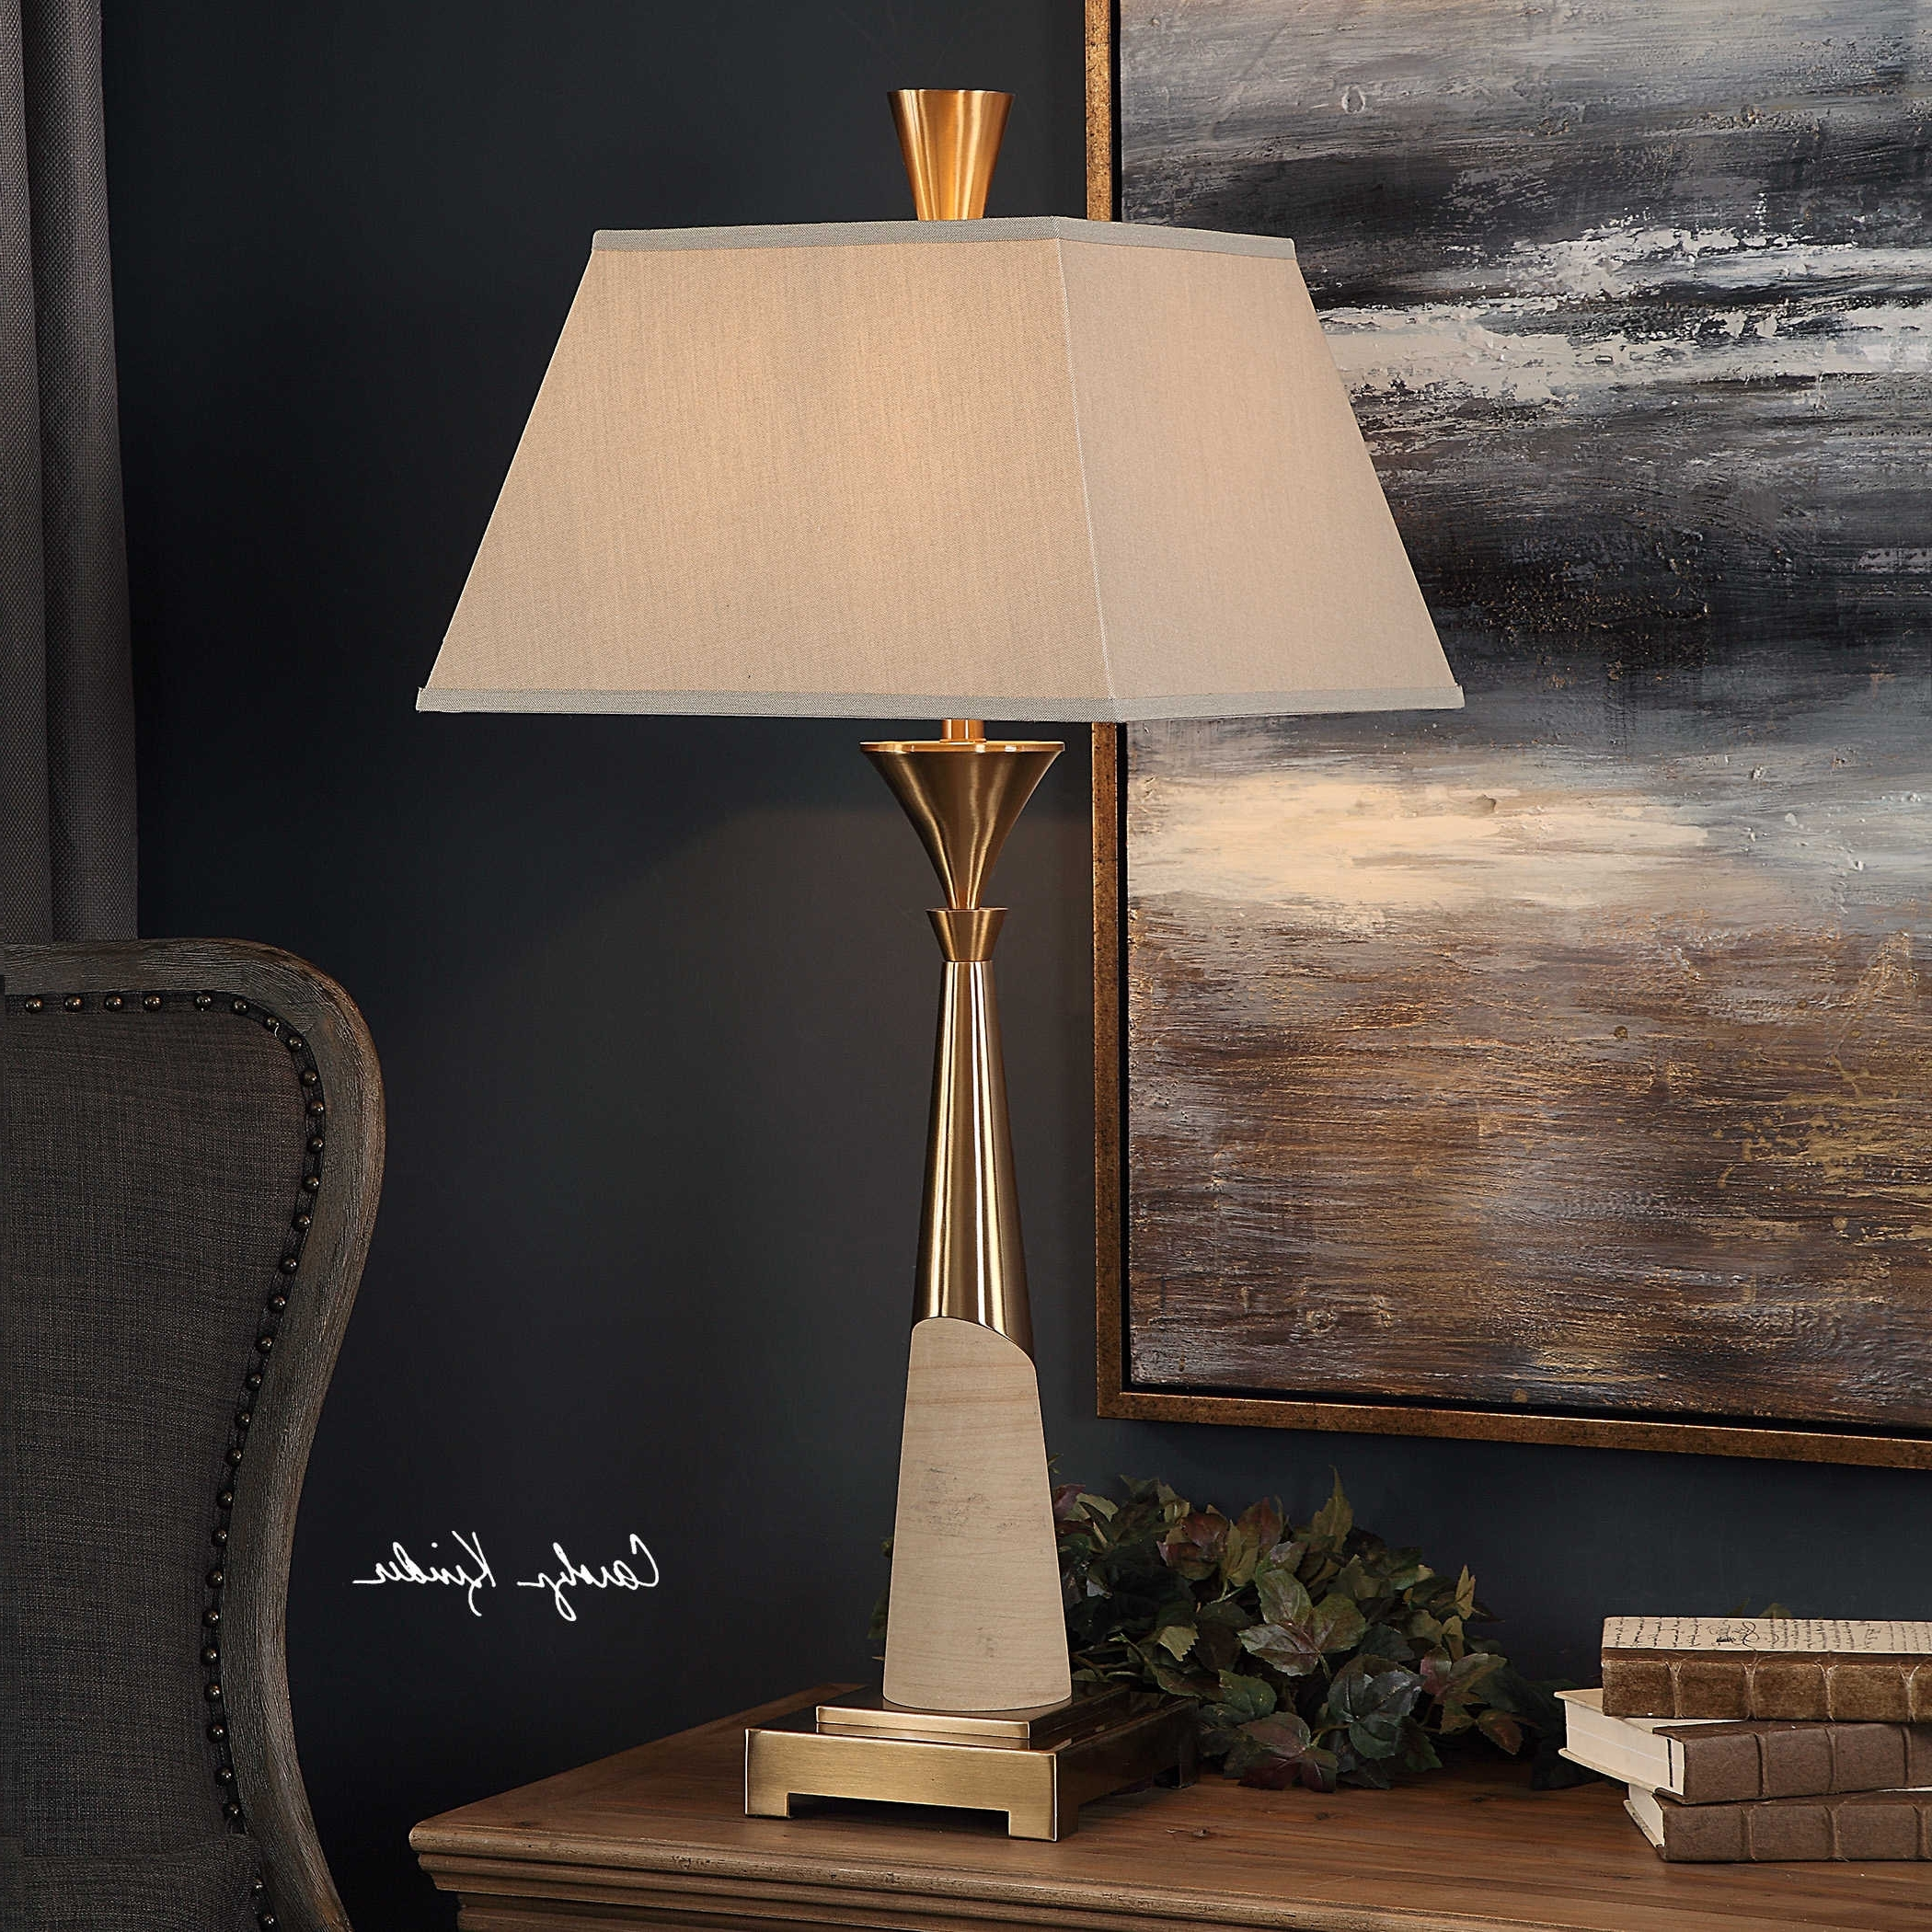 38 New Country Style Table Lamps Living Room